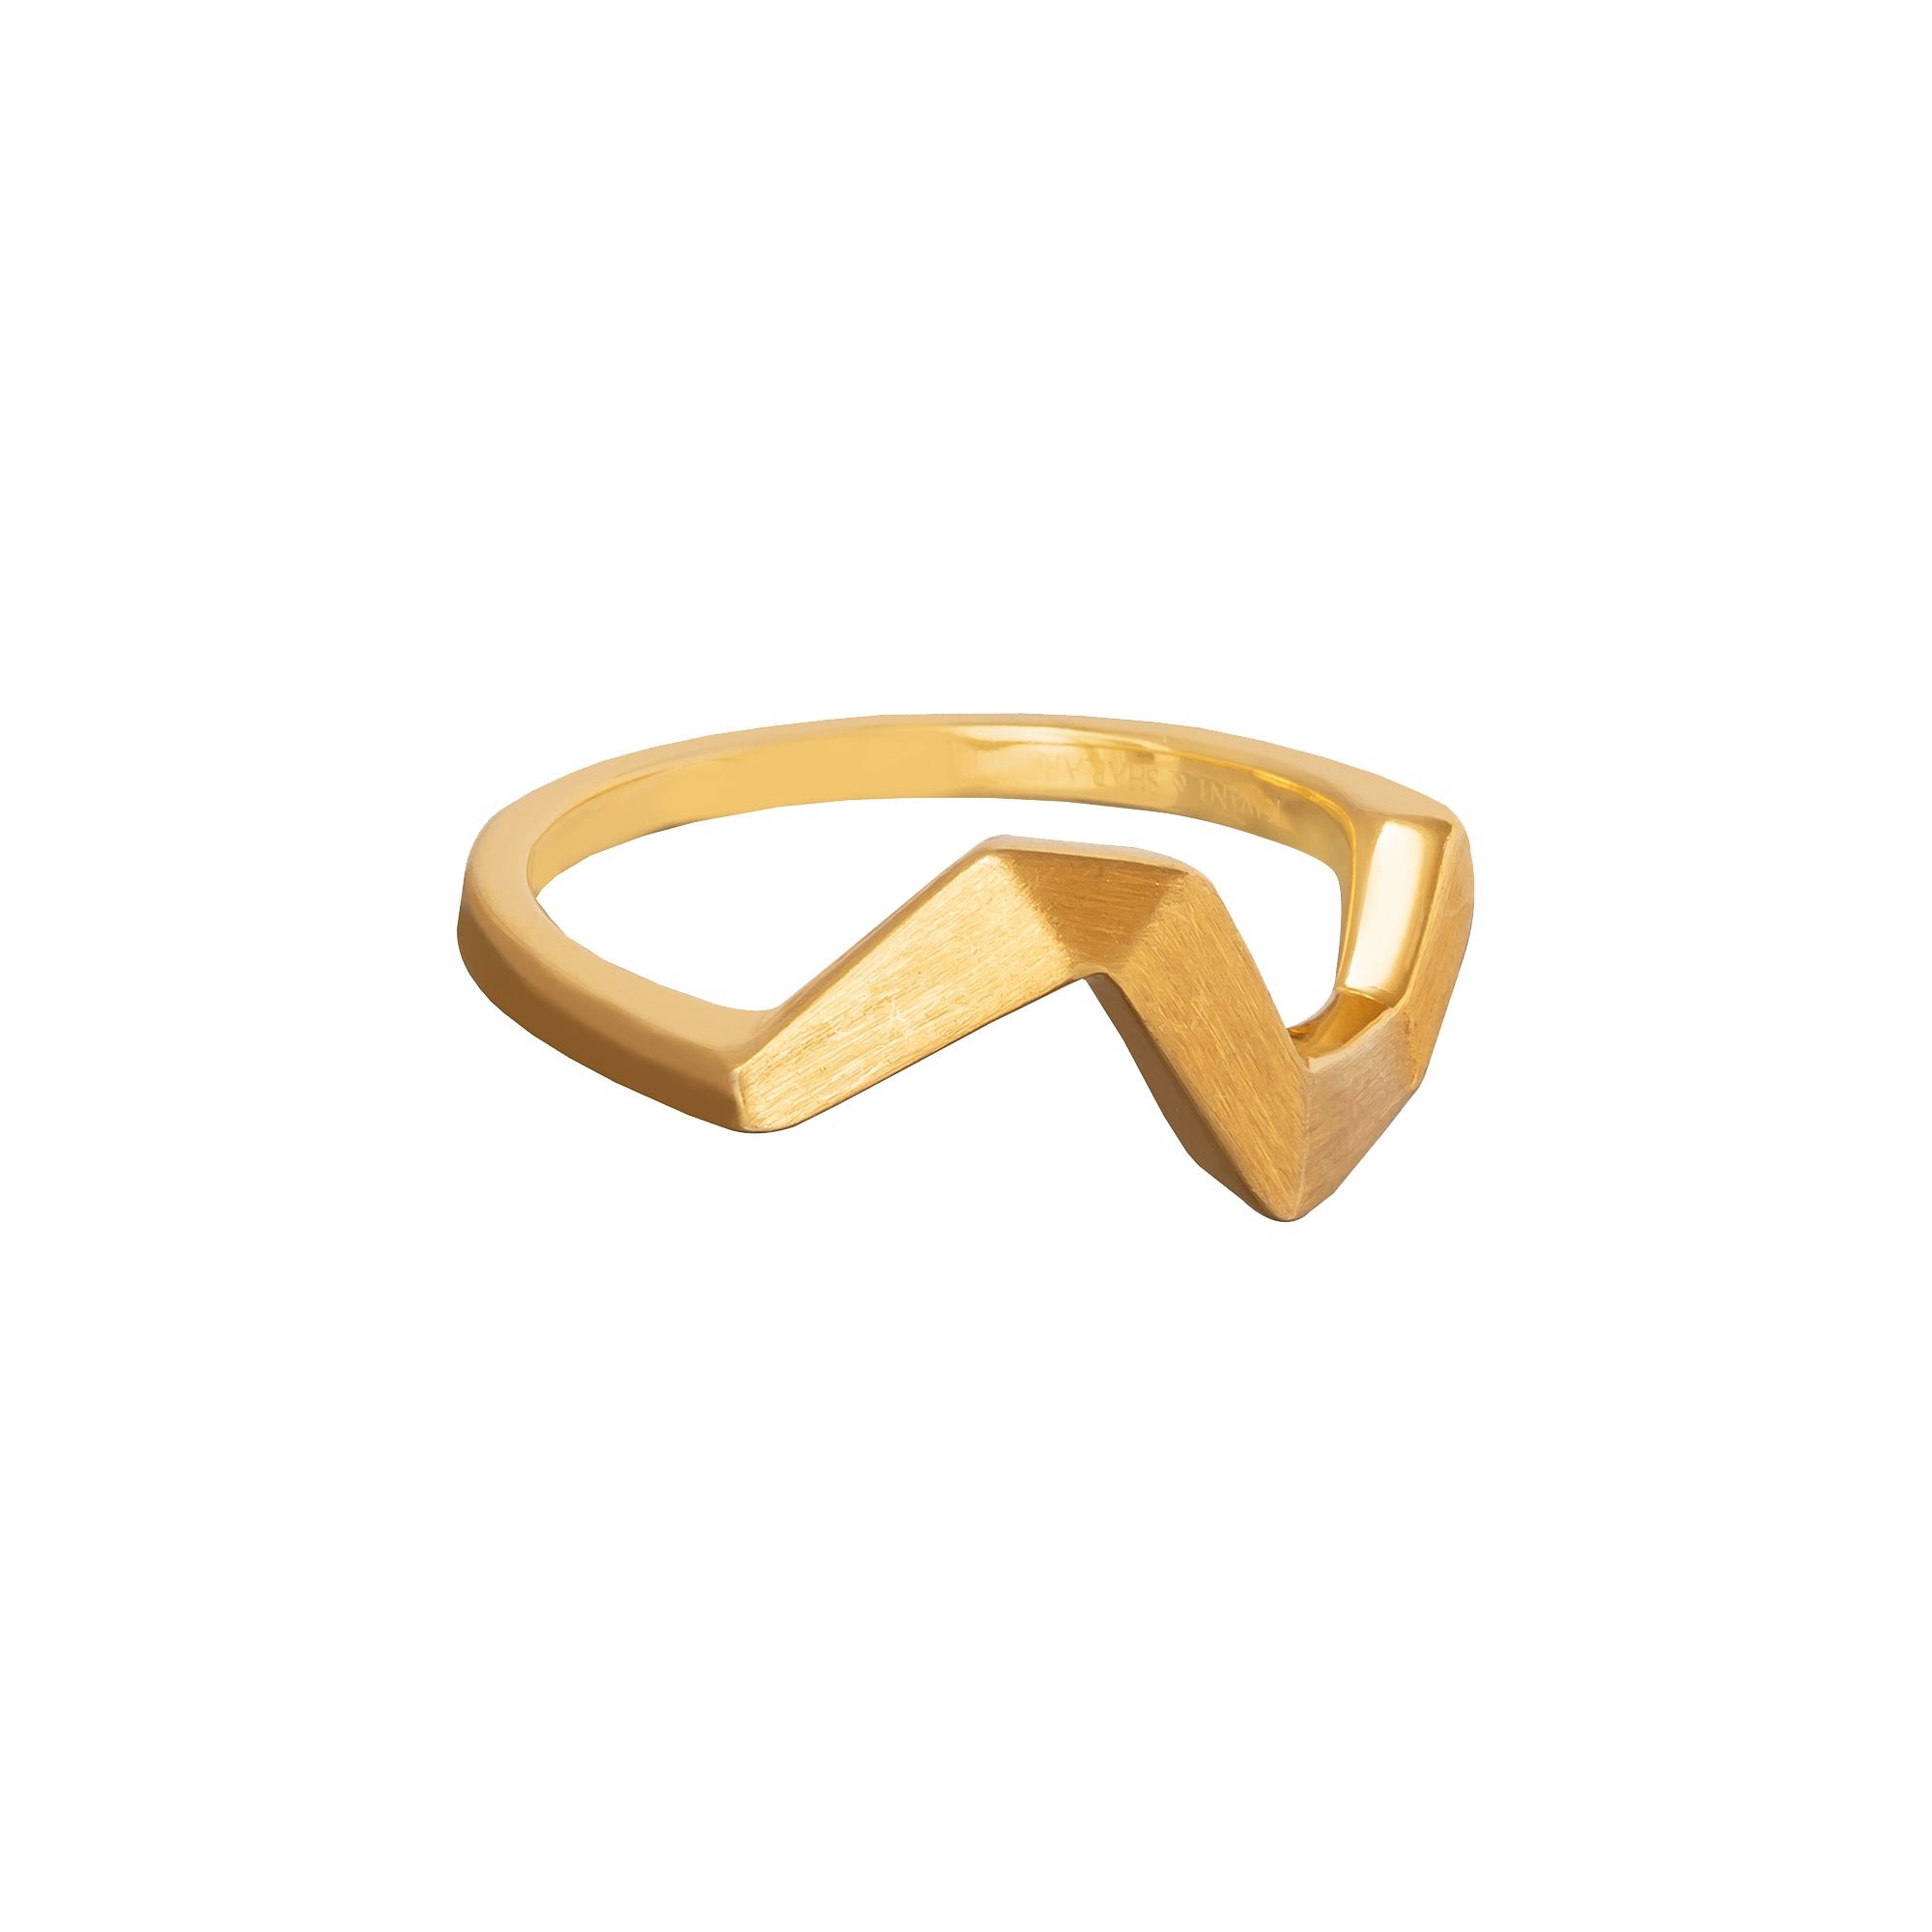 Origami Brushed Gold Ring - Kavant & Sharart  - Rings | Broken English Jewelry